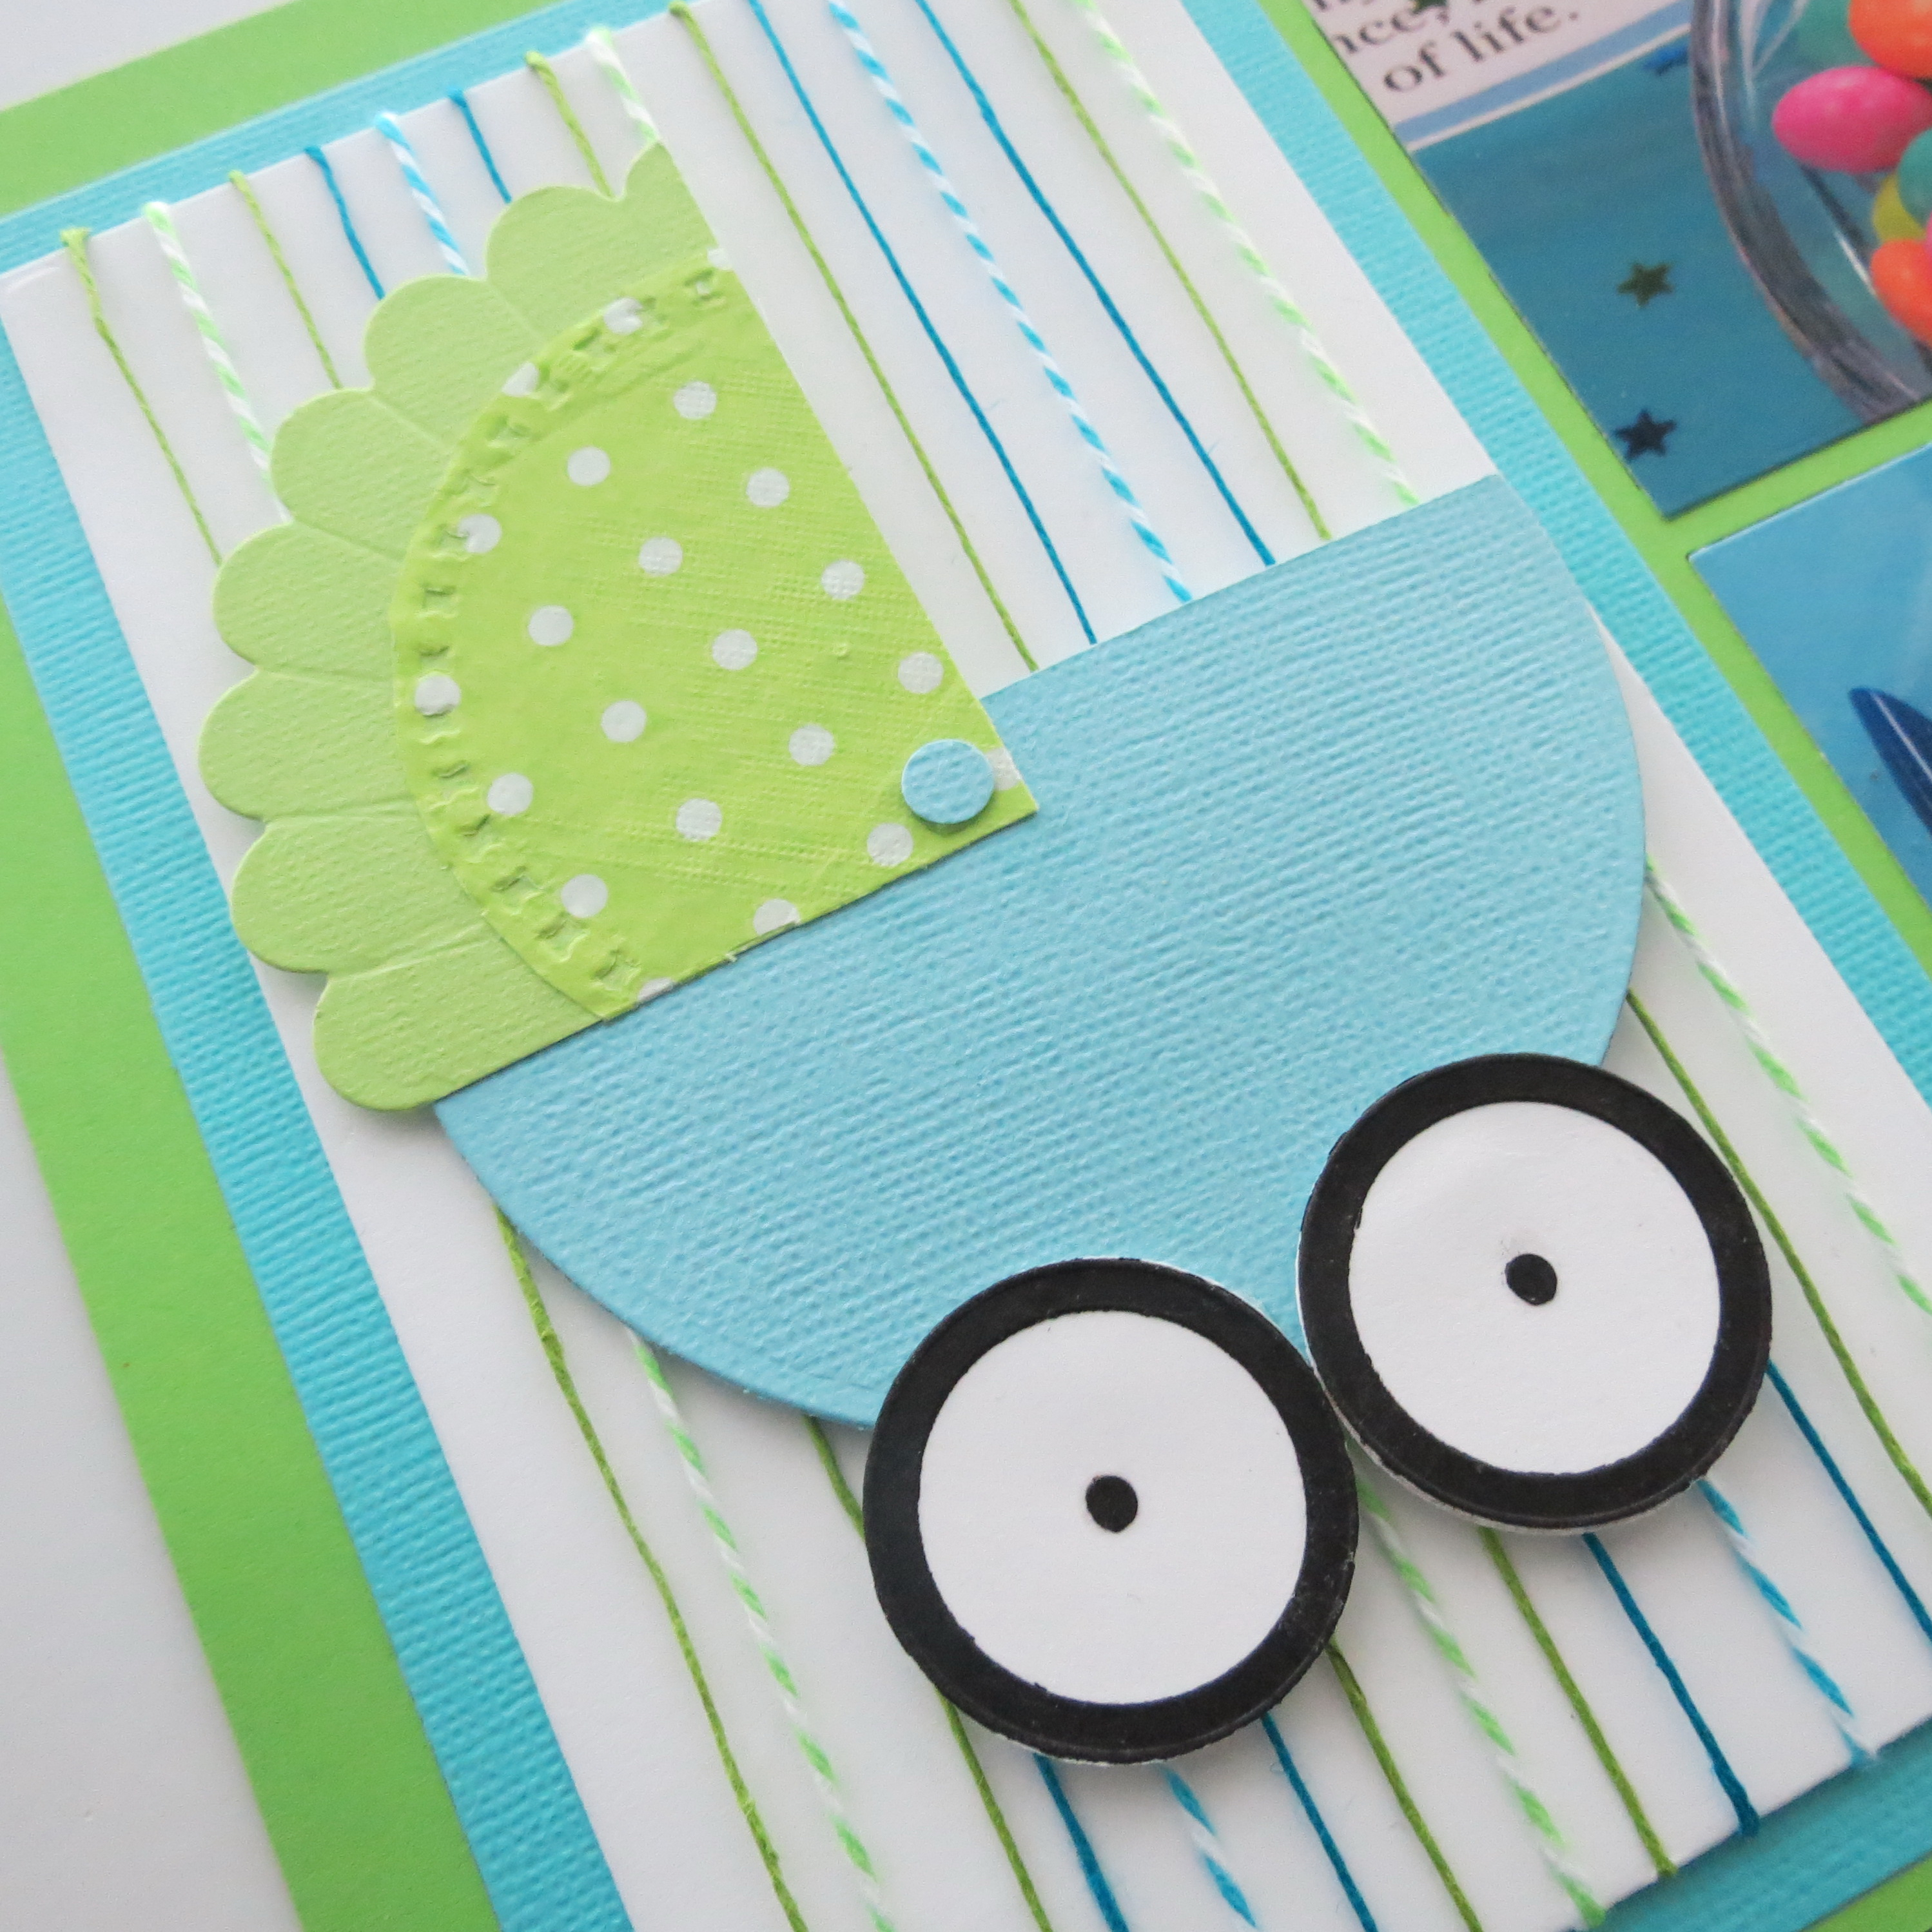 Scrapbook ideas summer vacation